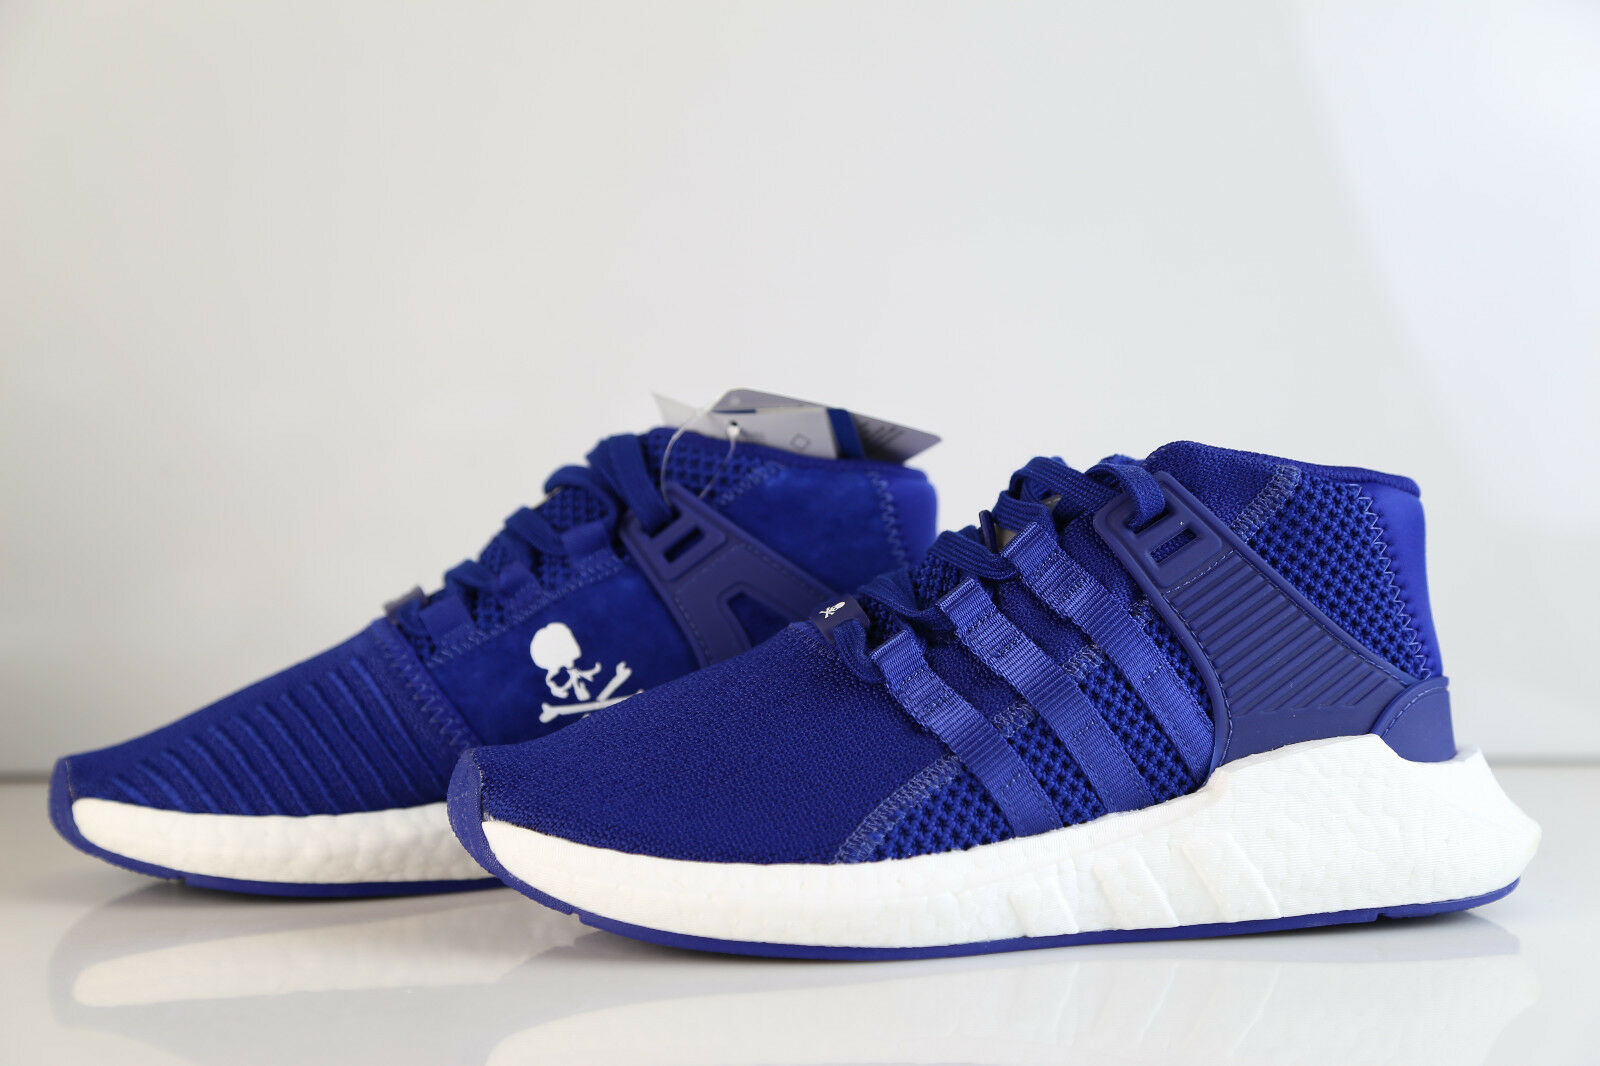 Adidas X MasterMind Japan EQT Support Blue Mid MMW Mystery Ink Blue Support CQ1825 7-13 boost c0e663